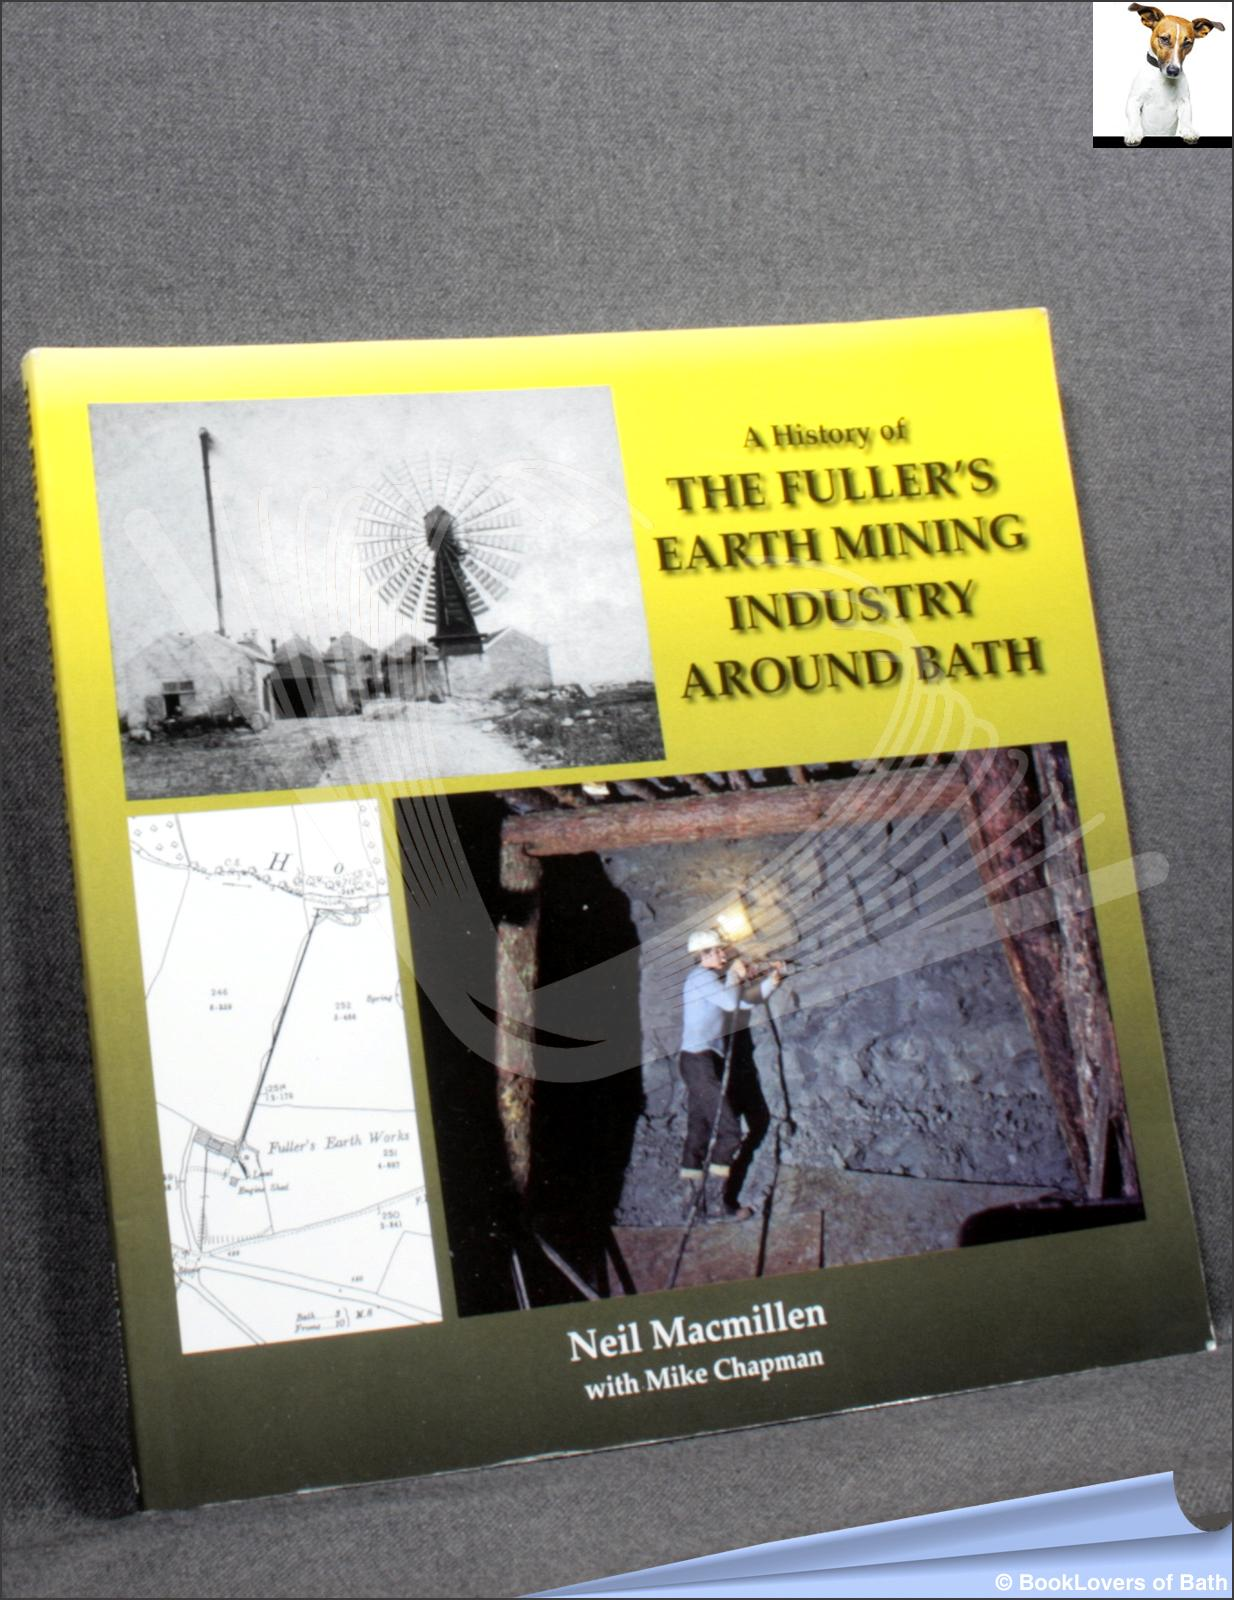 A History of the Fuller's Earth Mining Industry Around Bath - Neil Macmillen with Mike Chapman